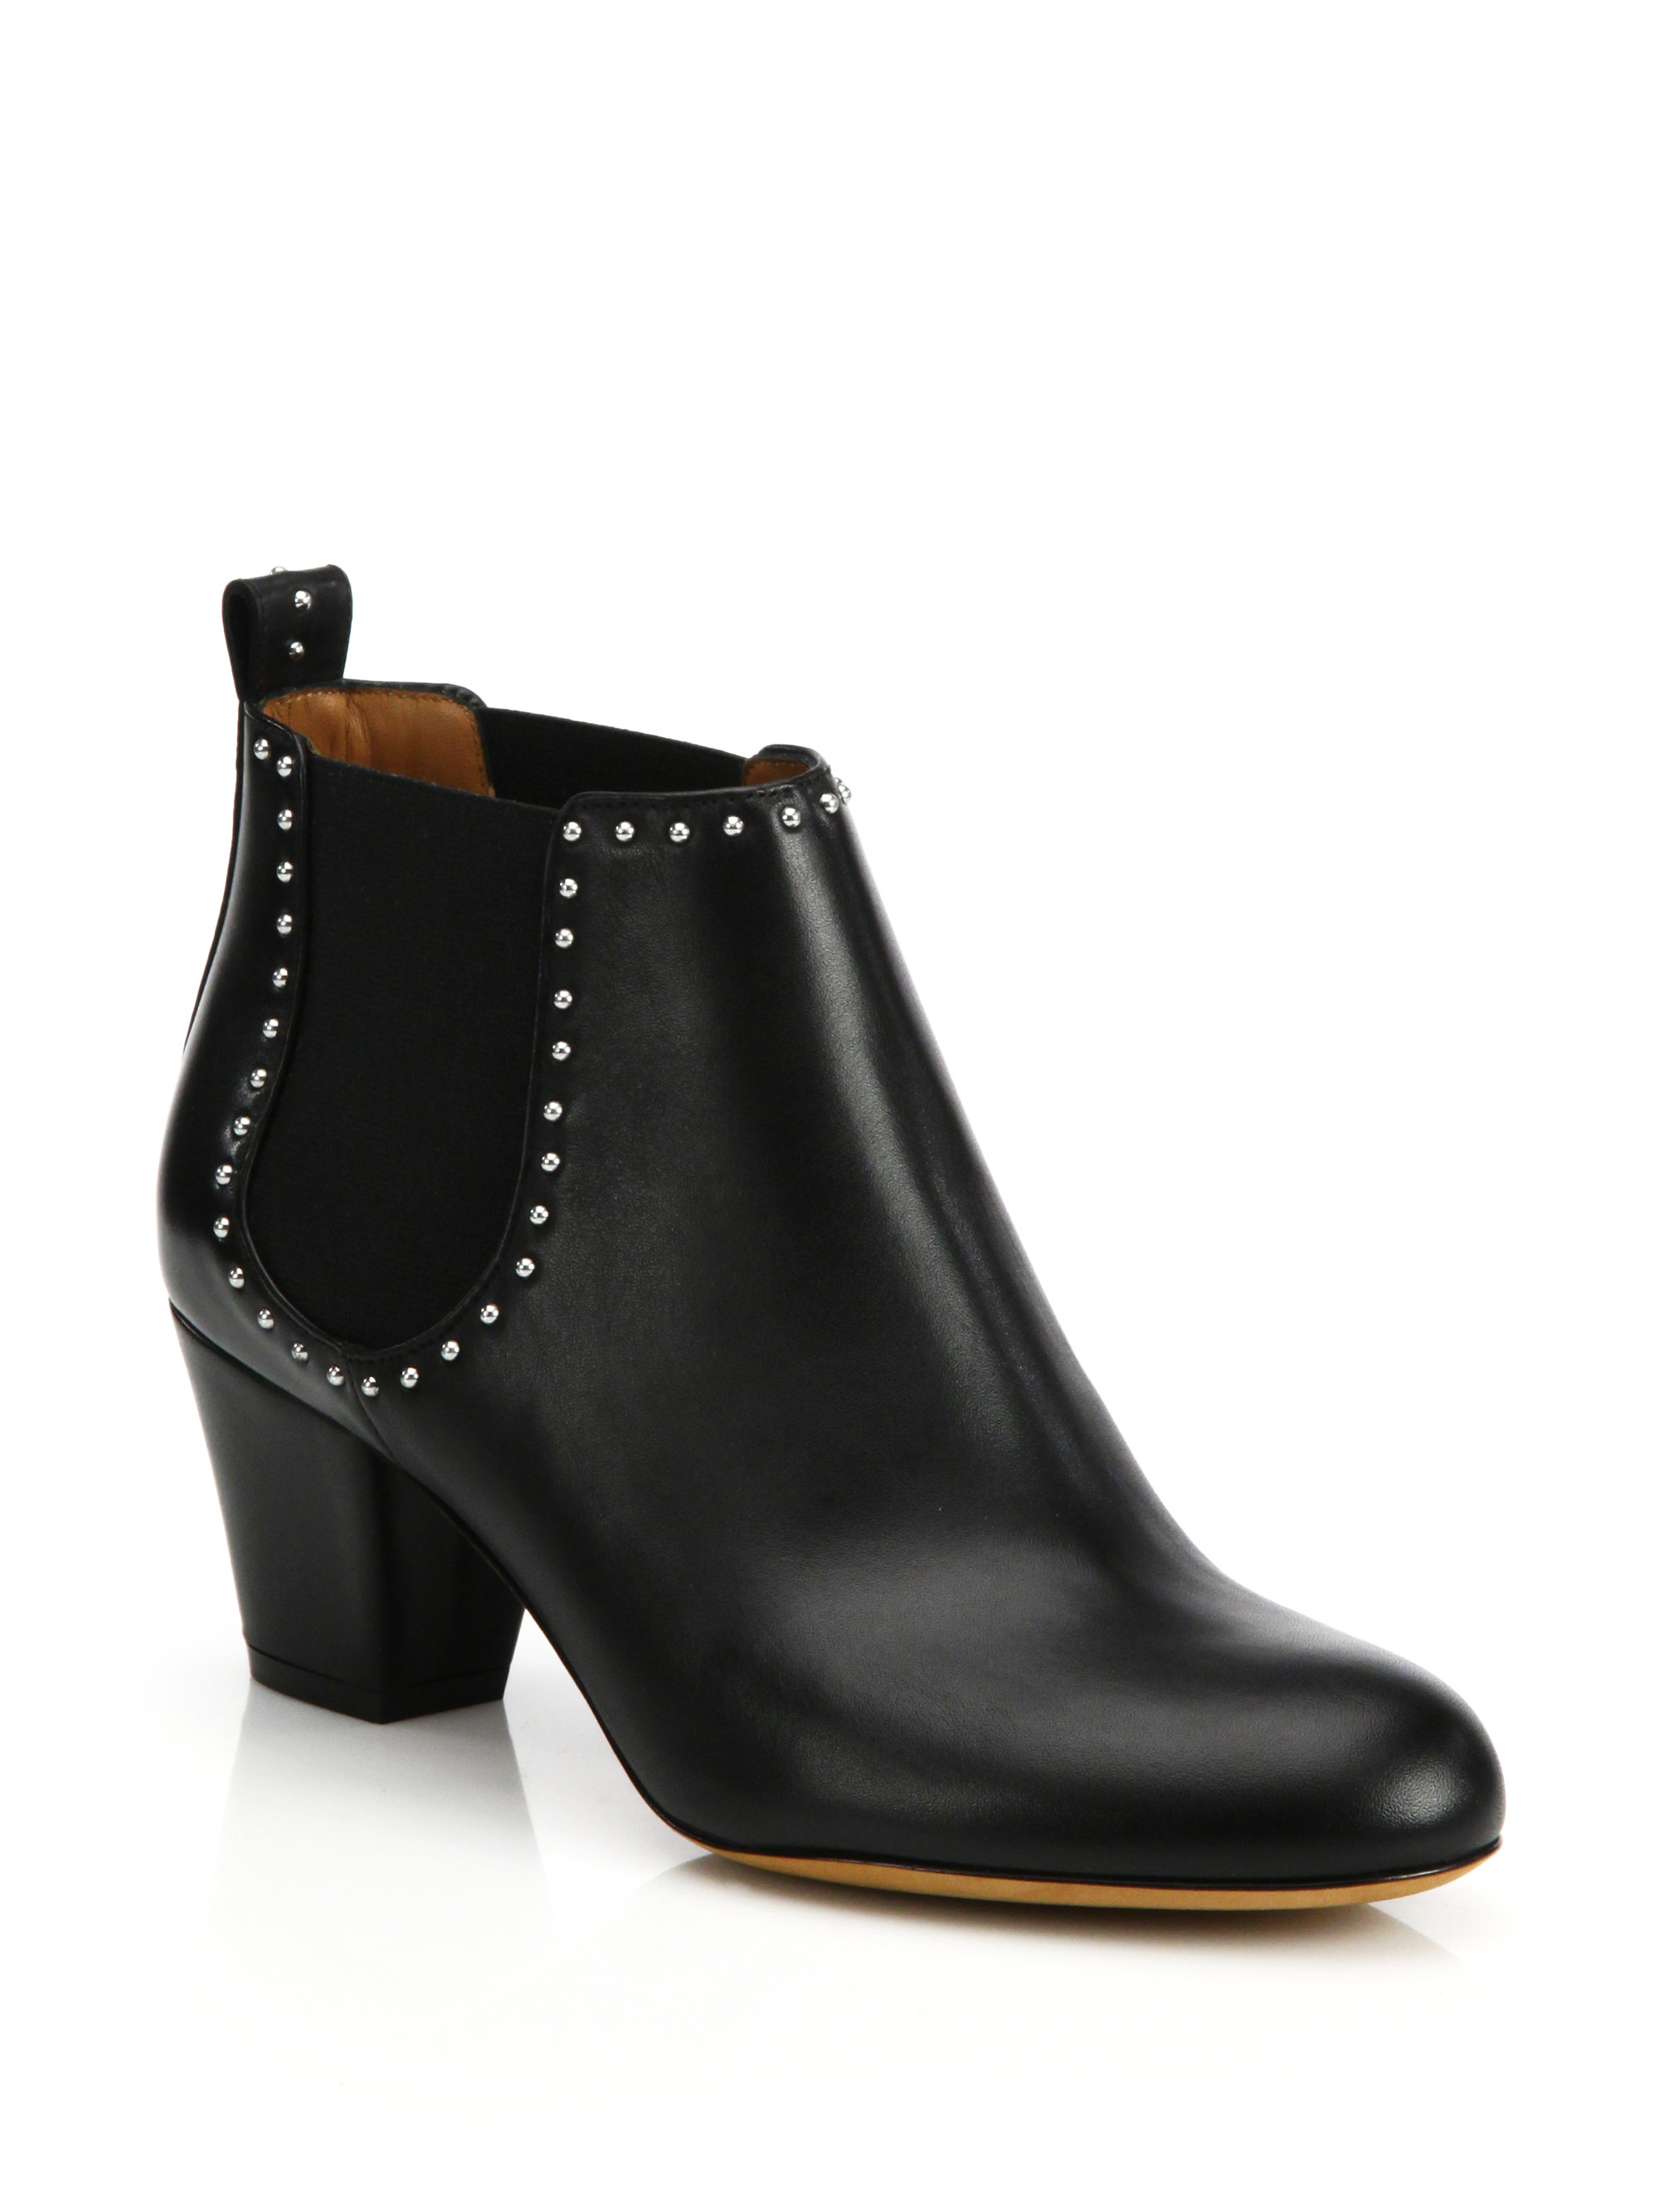 39a7b108f66 Lyst - Givenchy Elegant Studded Chelsea Ankle Boots in Black